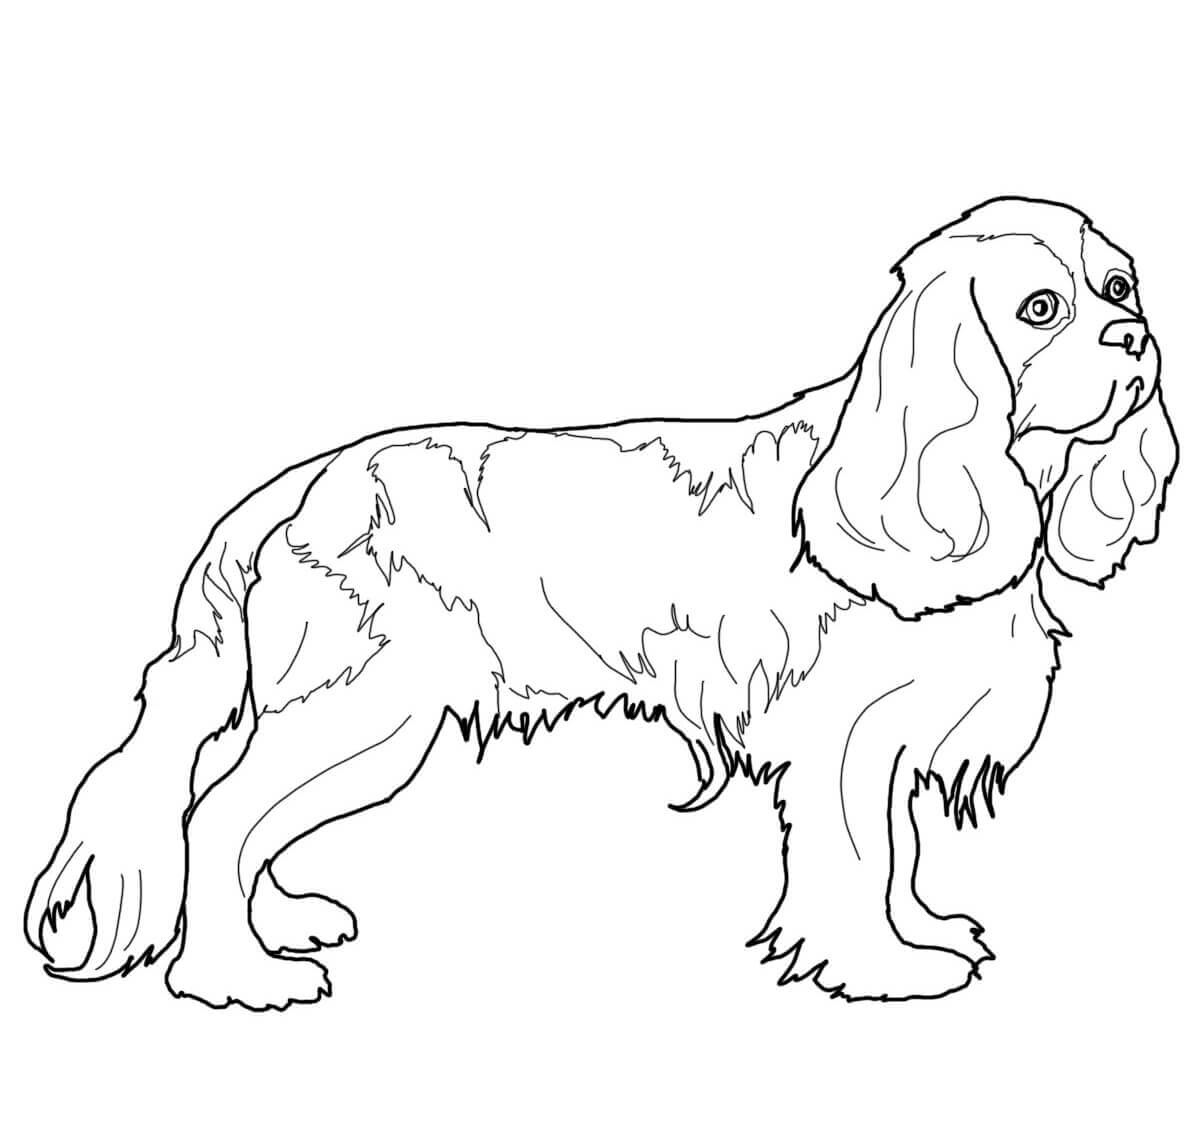 Cavalier King Charles Spaniel Coloring Page